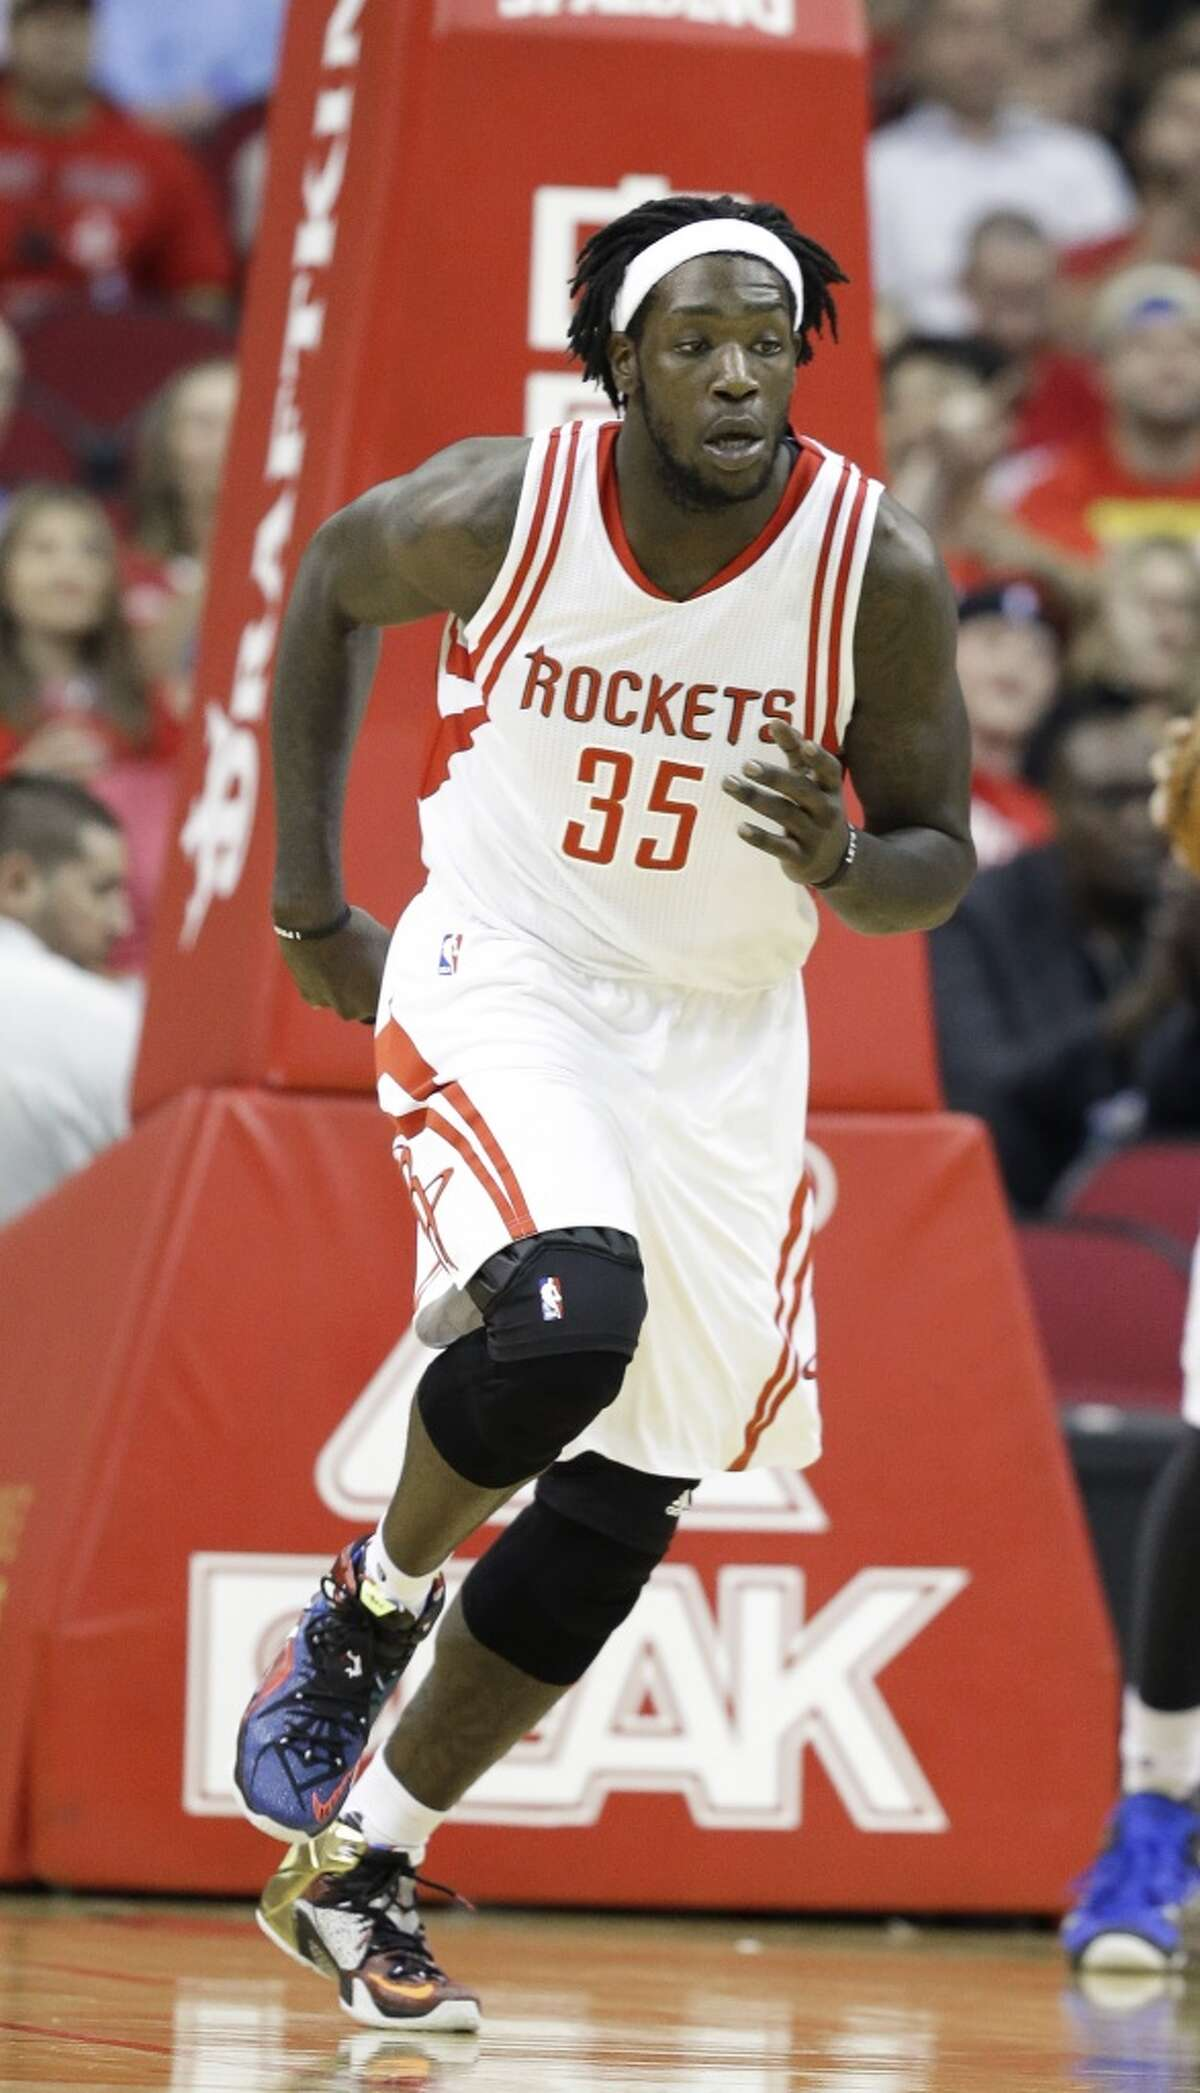 Oct. 20: Montrezl Harrell mentioned in Louisville scandal The season hadn't started yet, and rookie Montrezl Harrell hadn't even officially started his NBA career, but his name already was in the middle of a controversy. He was one of the Louisville players mentioned in an ESPN Outside the Lines piece in the Louisville recruiting scandal. A former escort said Harrell had sex at Louisville's recruiting parties and it was all paid for by a Louisville assistant.